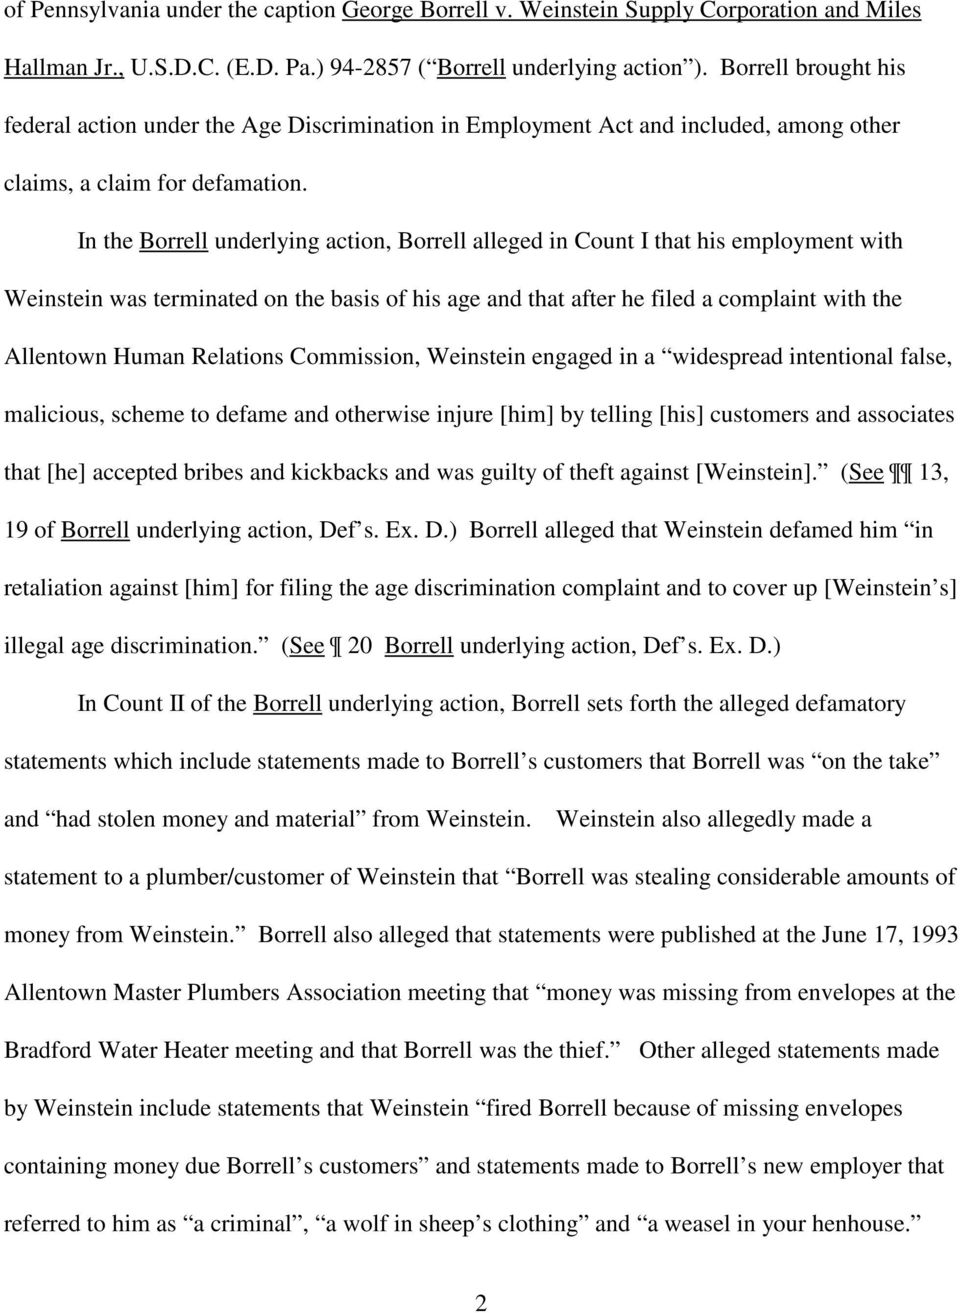 In the Borrell underlying action, Borrell alleged in Count I that his employment with Weinstein was terminated on the basis of his age and that after he filed a complaint with the Allentown Human